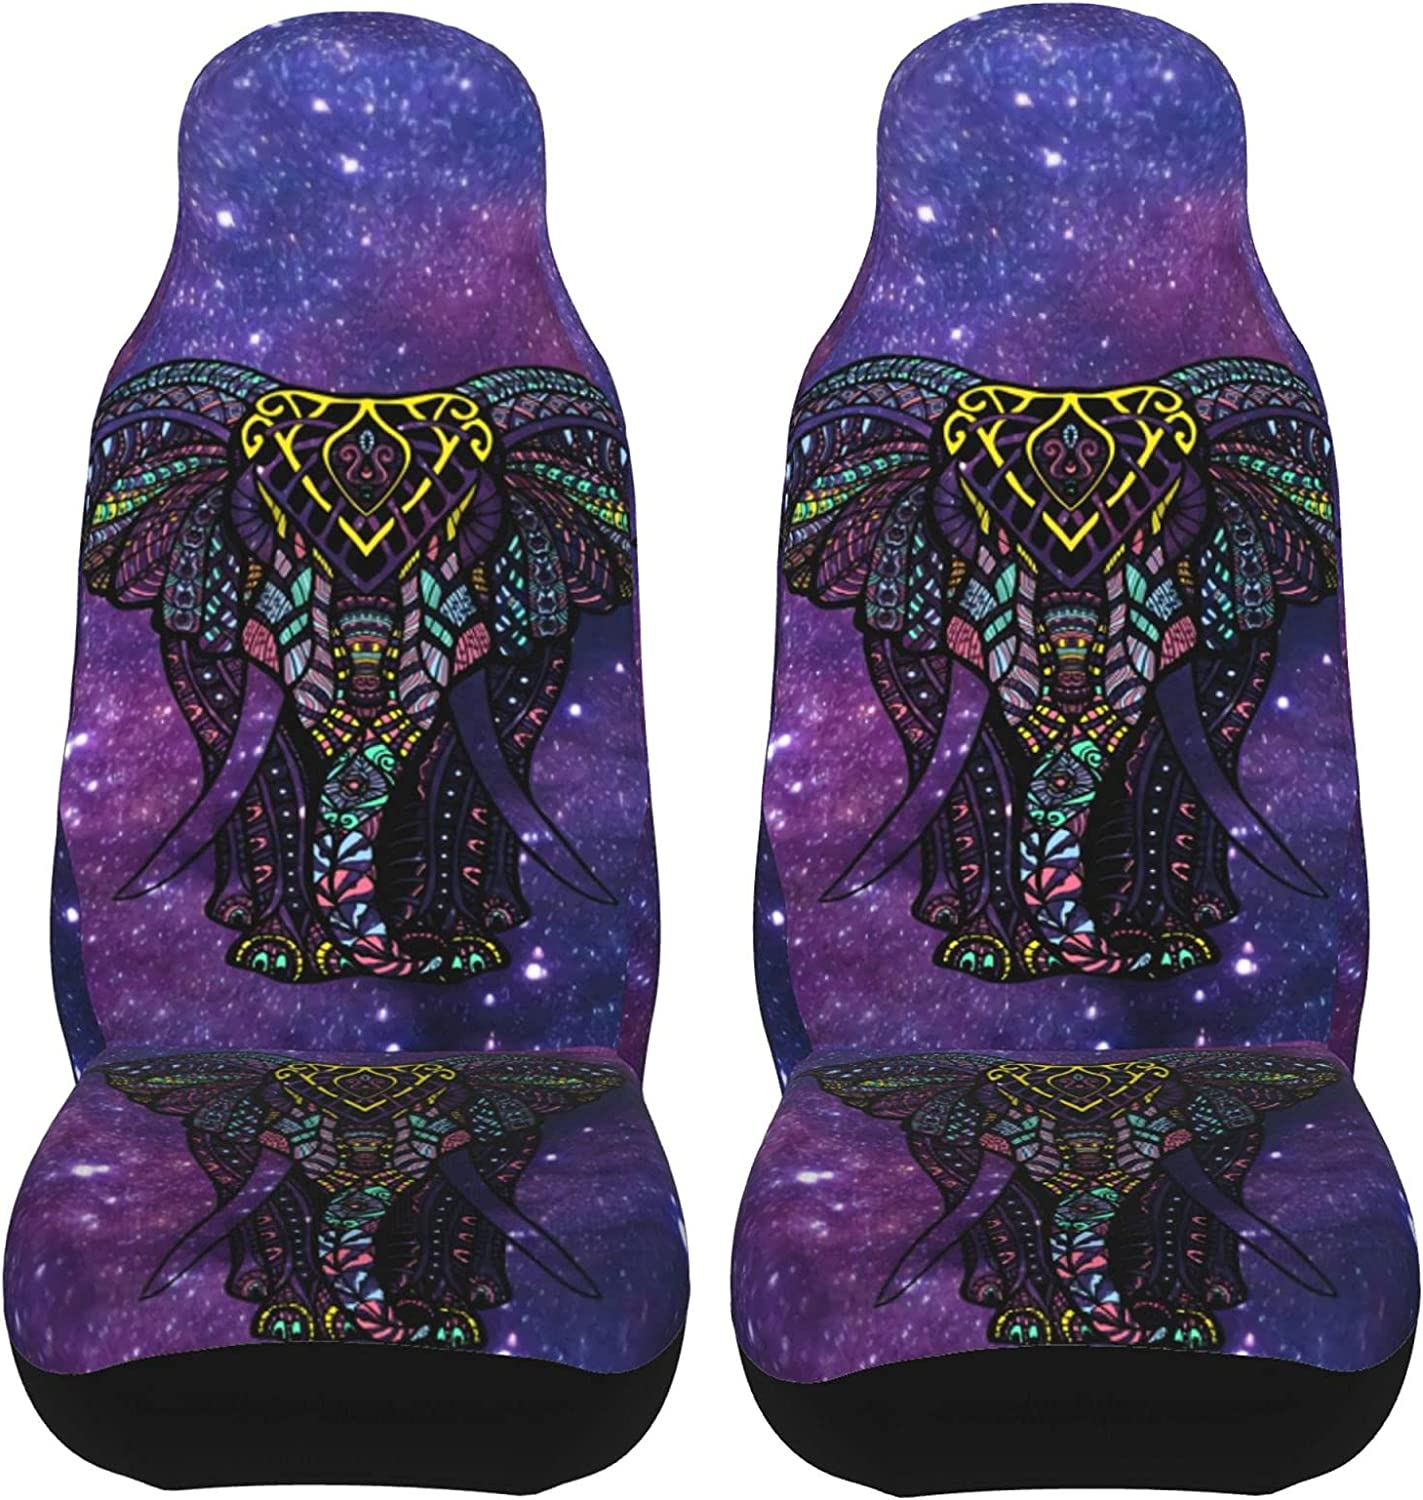 Galaxy Elephant Car Seat Covers Front Waterproof Max 45% OFF Boho Universal Ranking TOP14